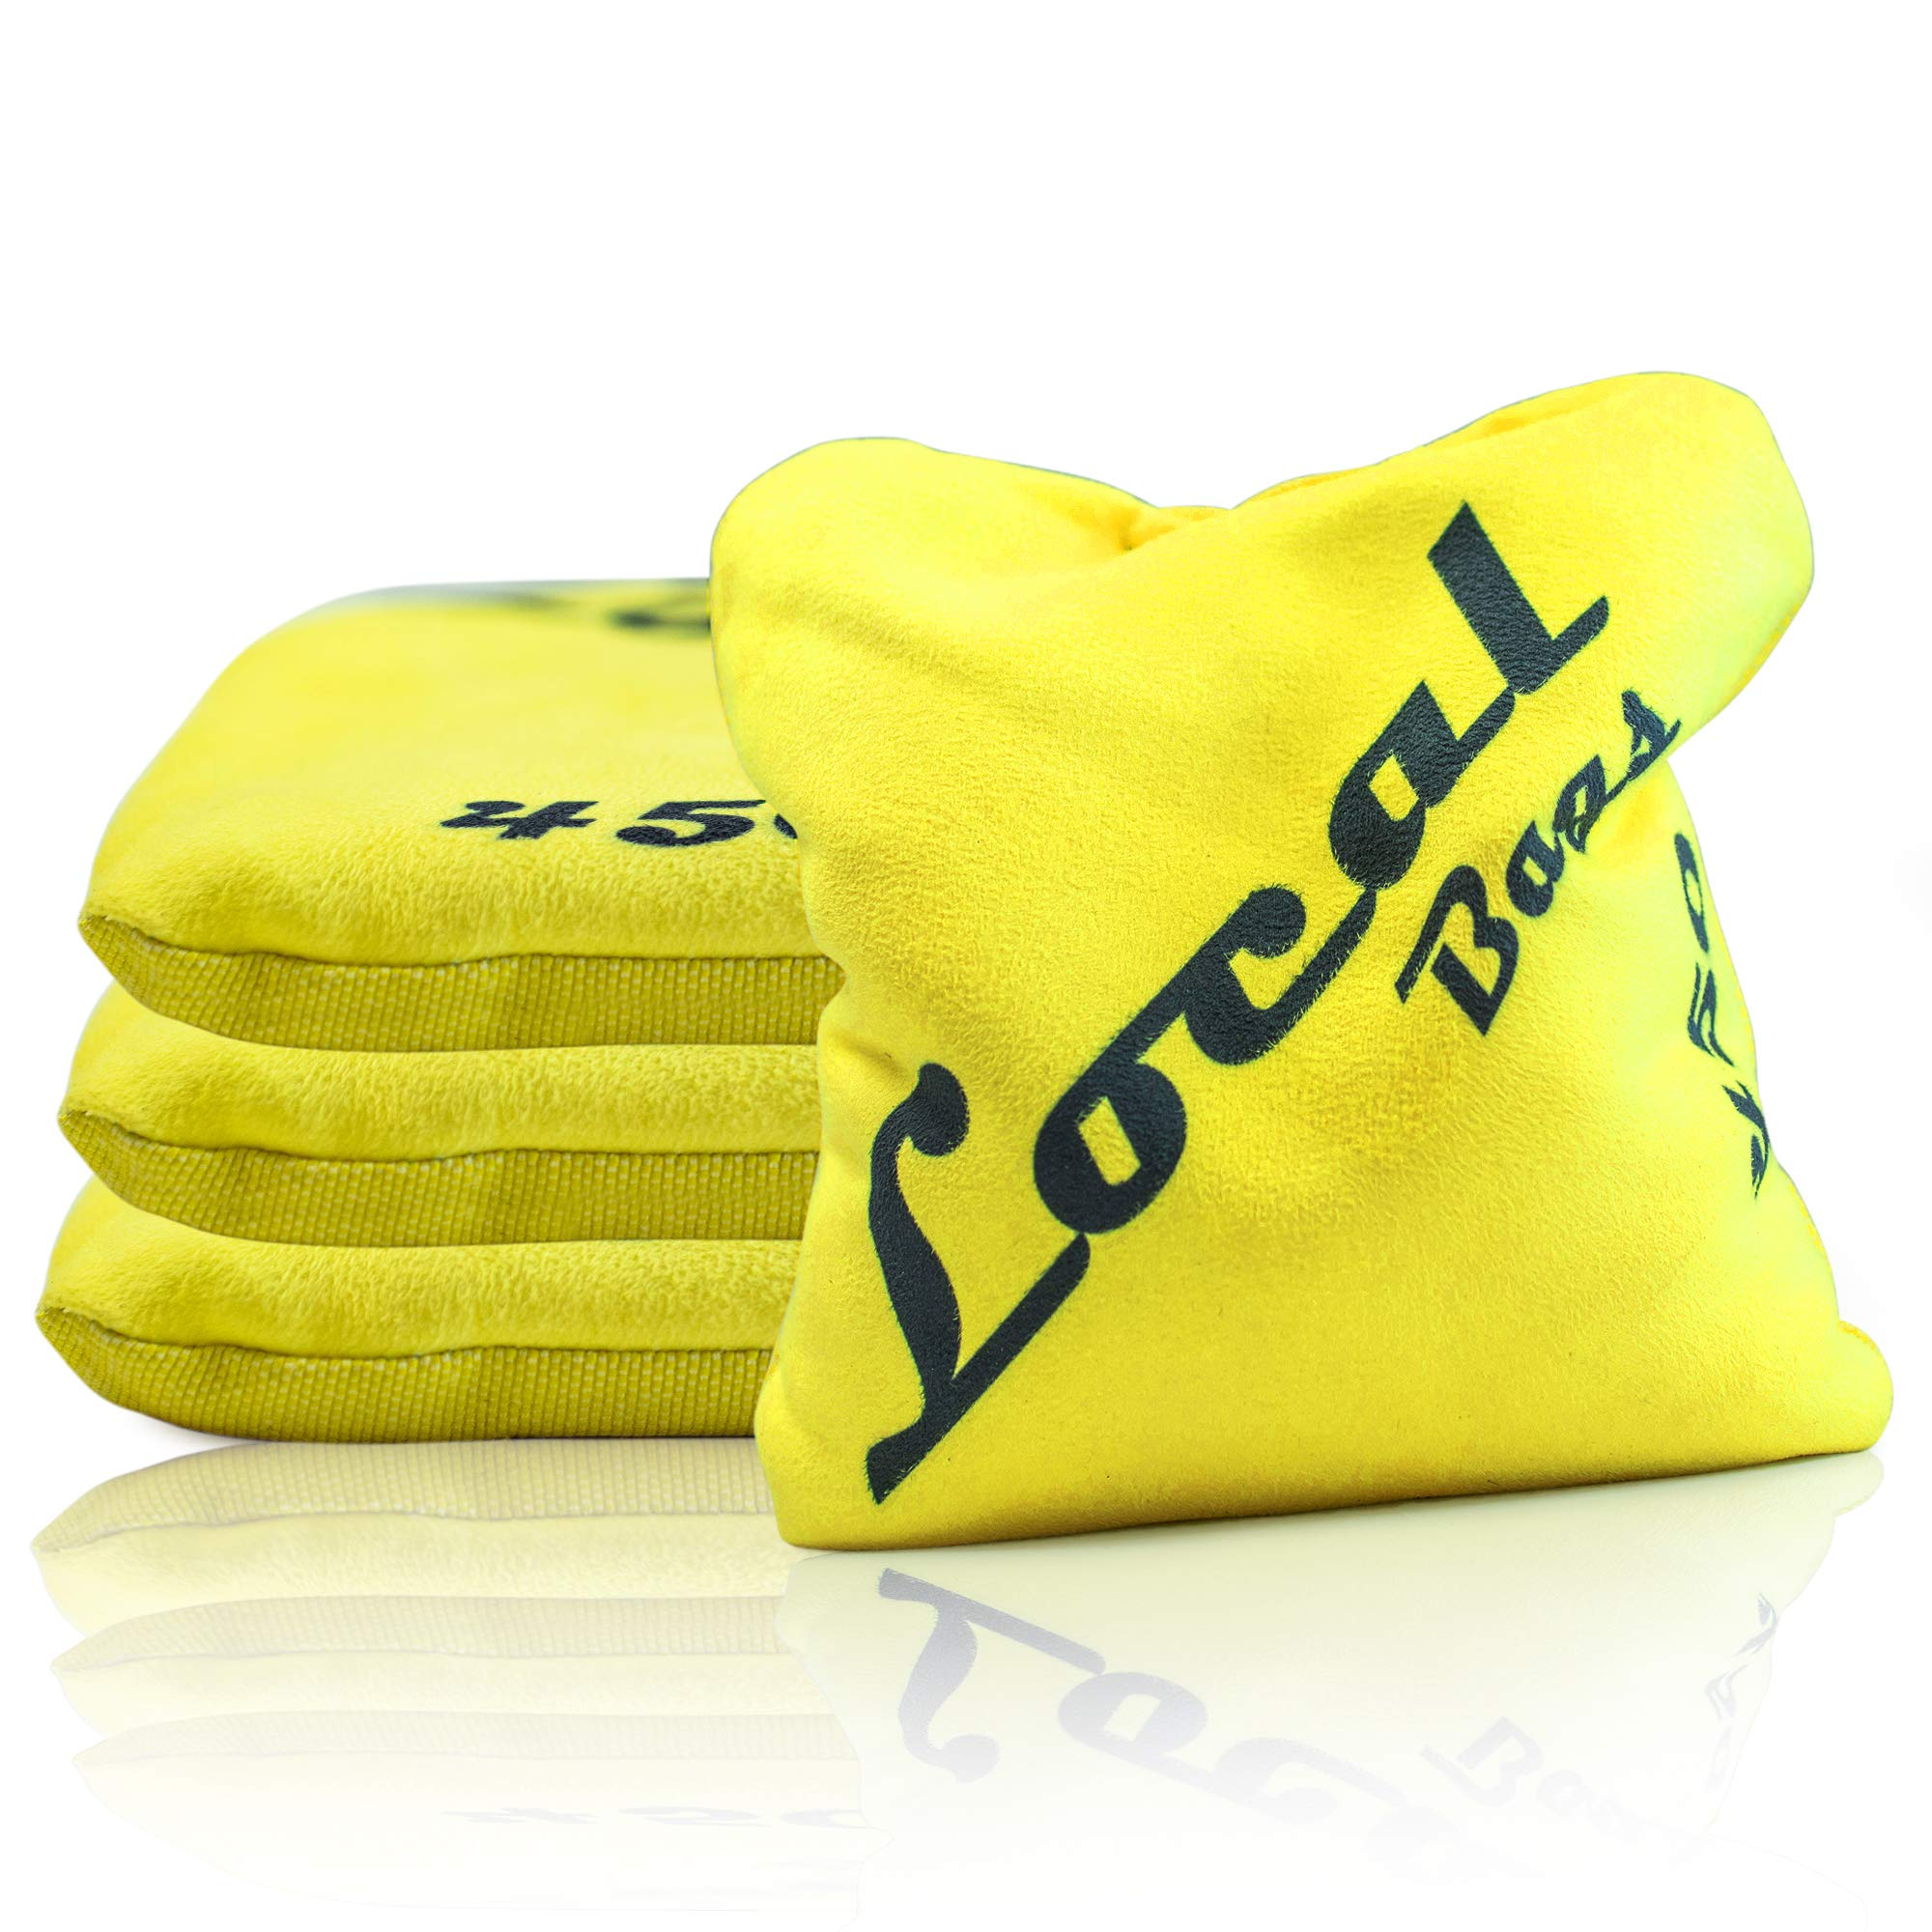 Local Bags Cornhole - 450's Series - Set of 4 Bags- ACL Approved Resin Filled - Double Sided - Sticky Side/Slick Side Made in USA (Yellow) by Local Bags